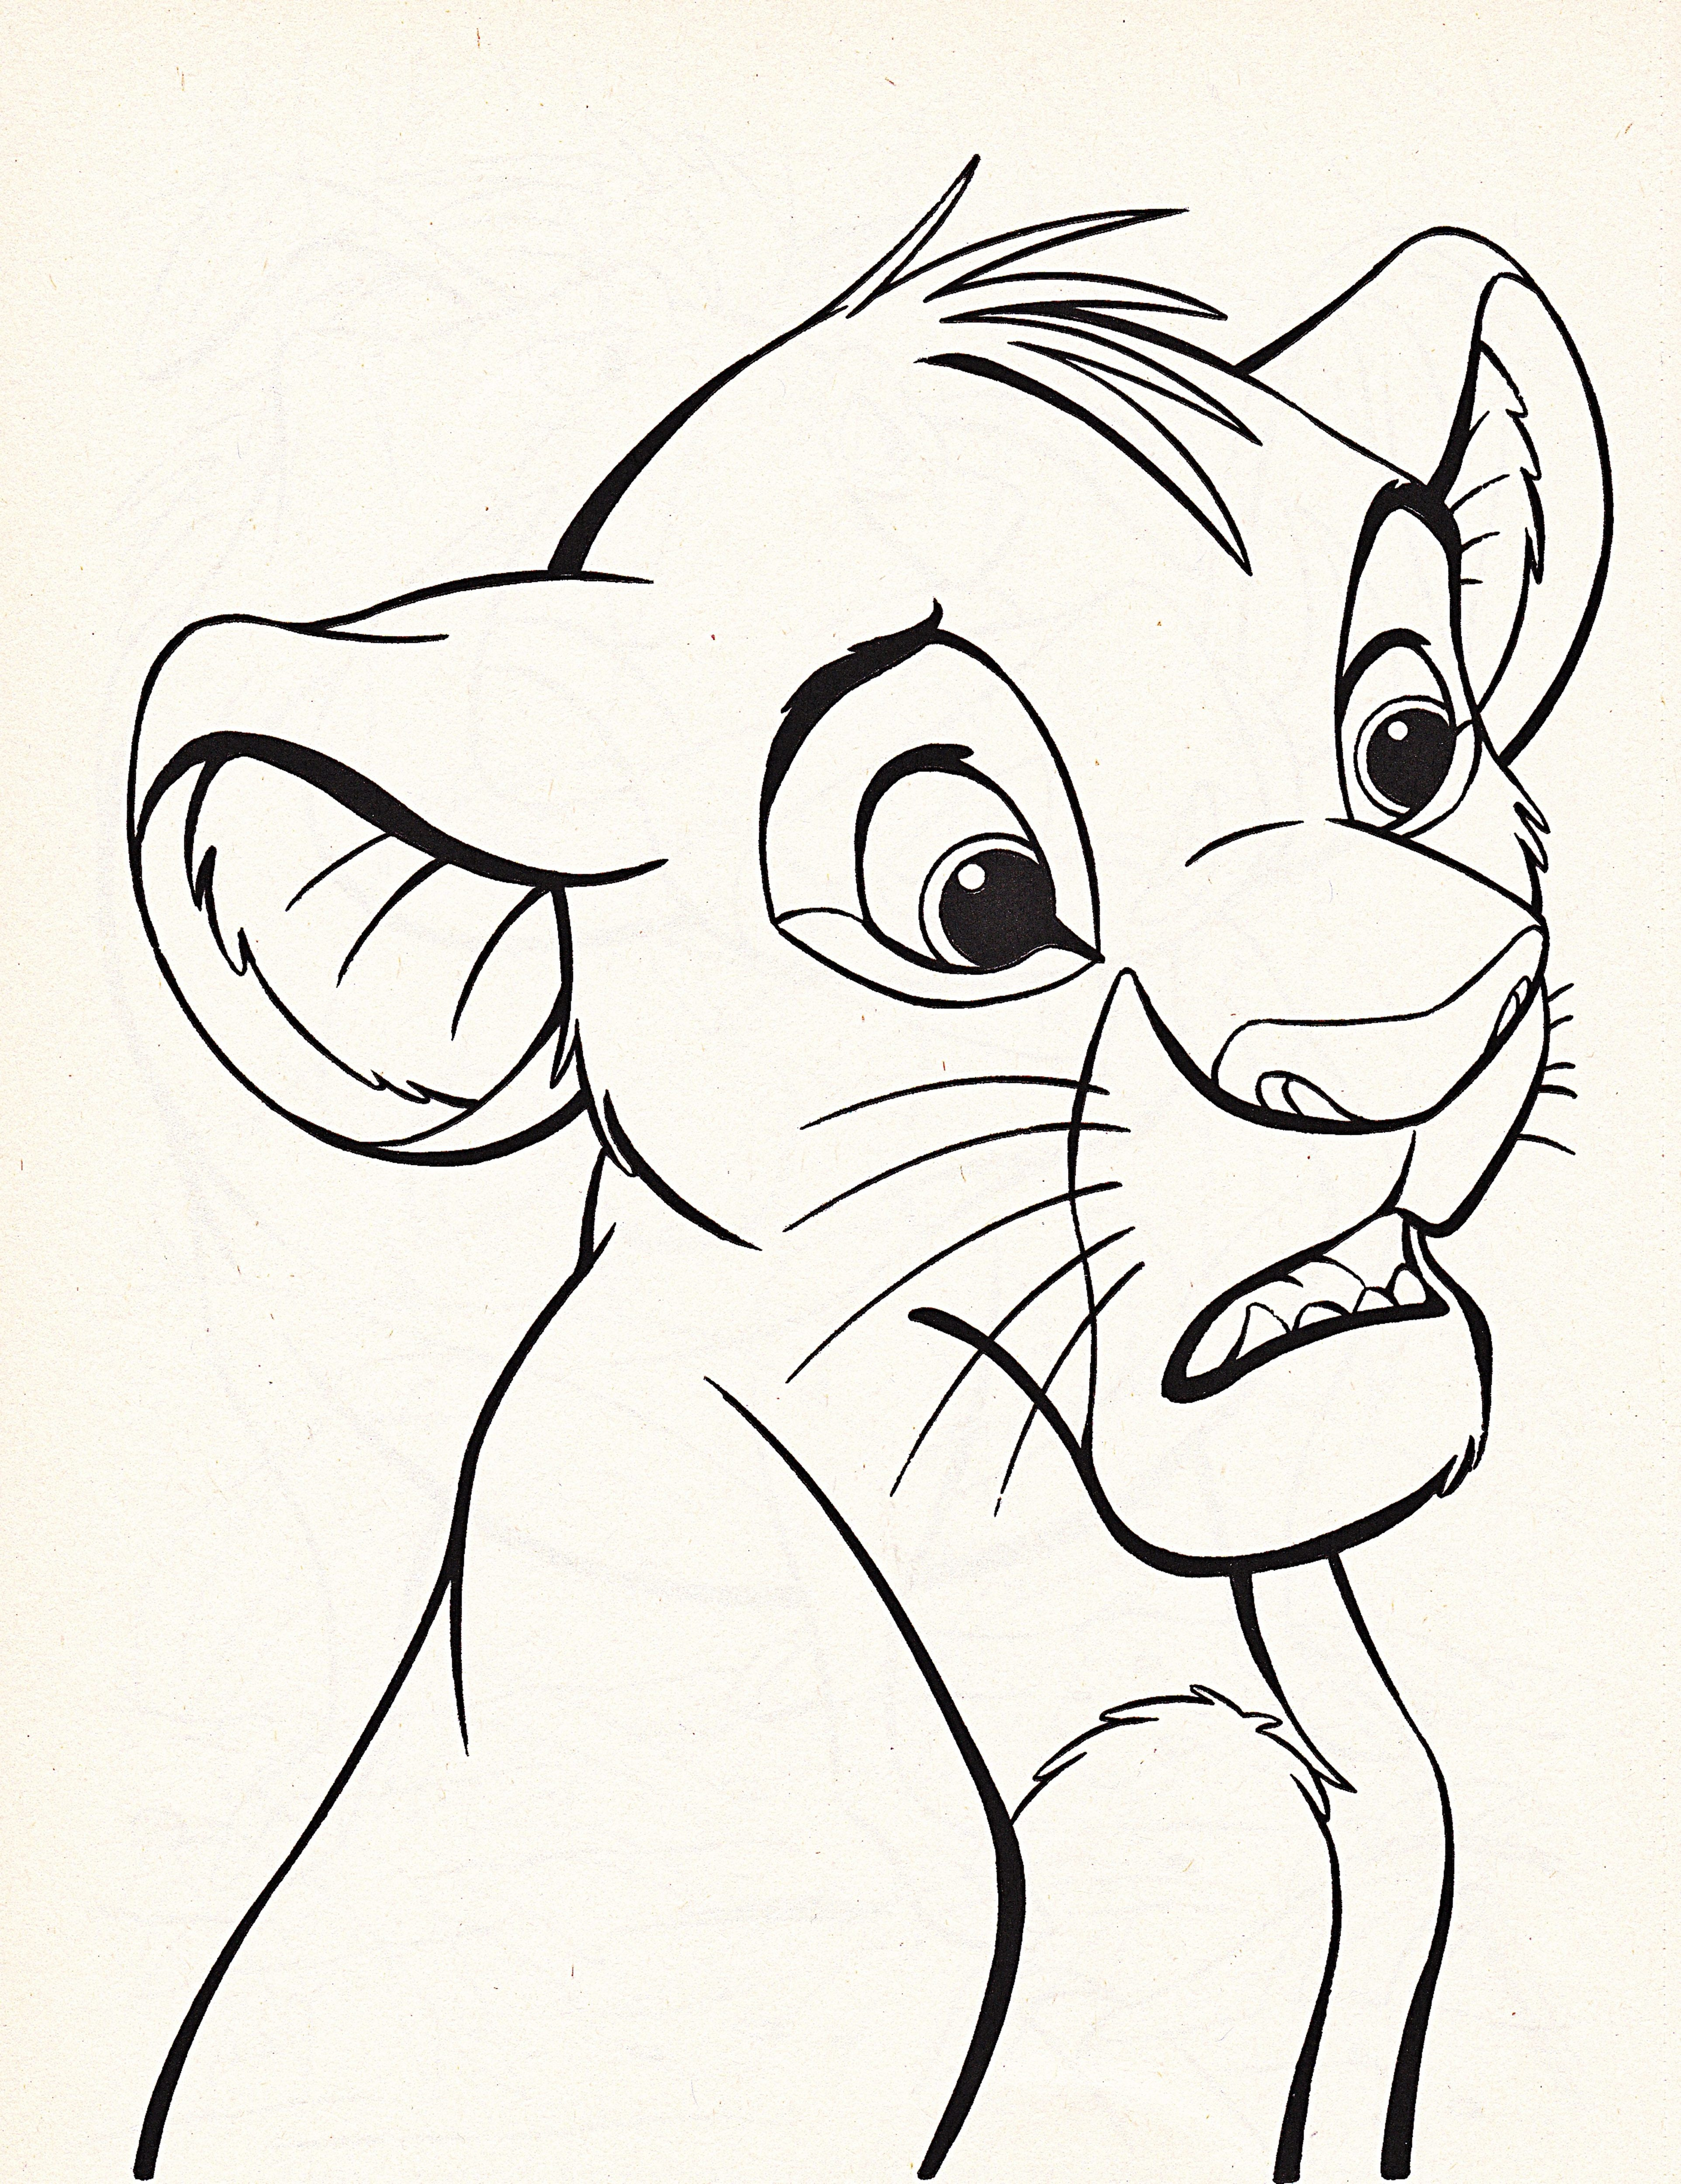 disney character coloring pages - photo#32